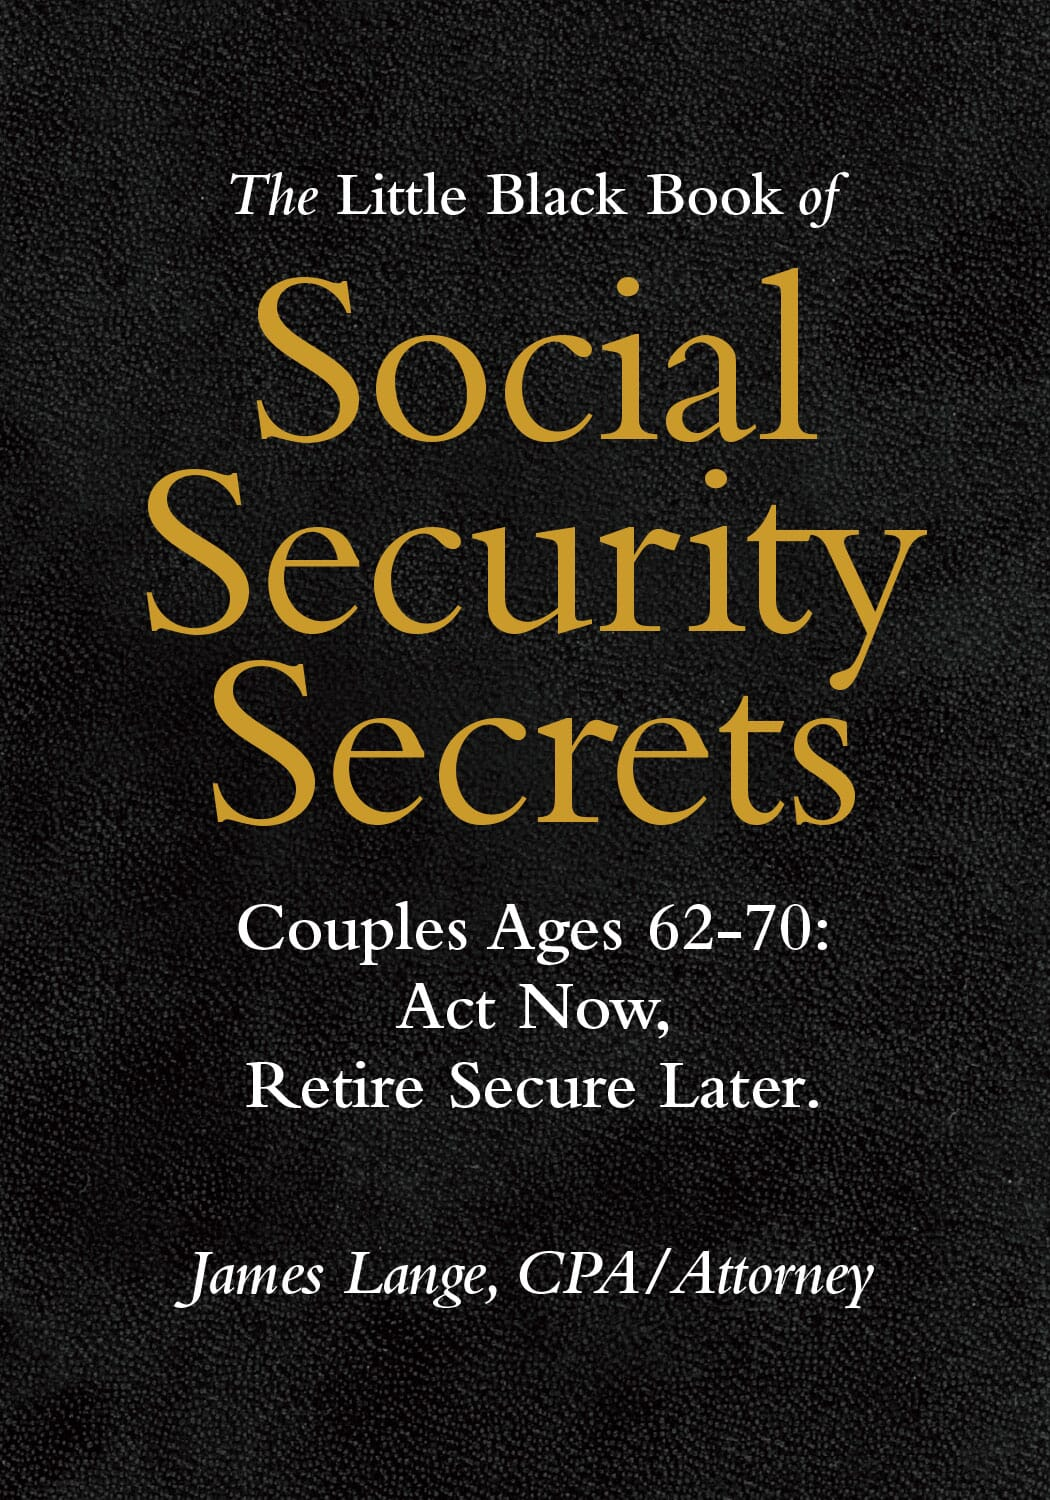 The Little Black Book of Social Security Secrets James Lange